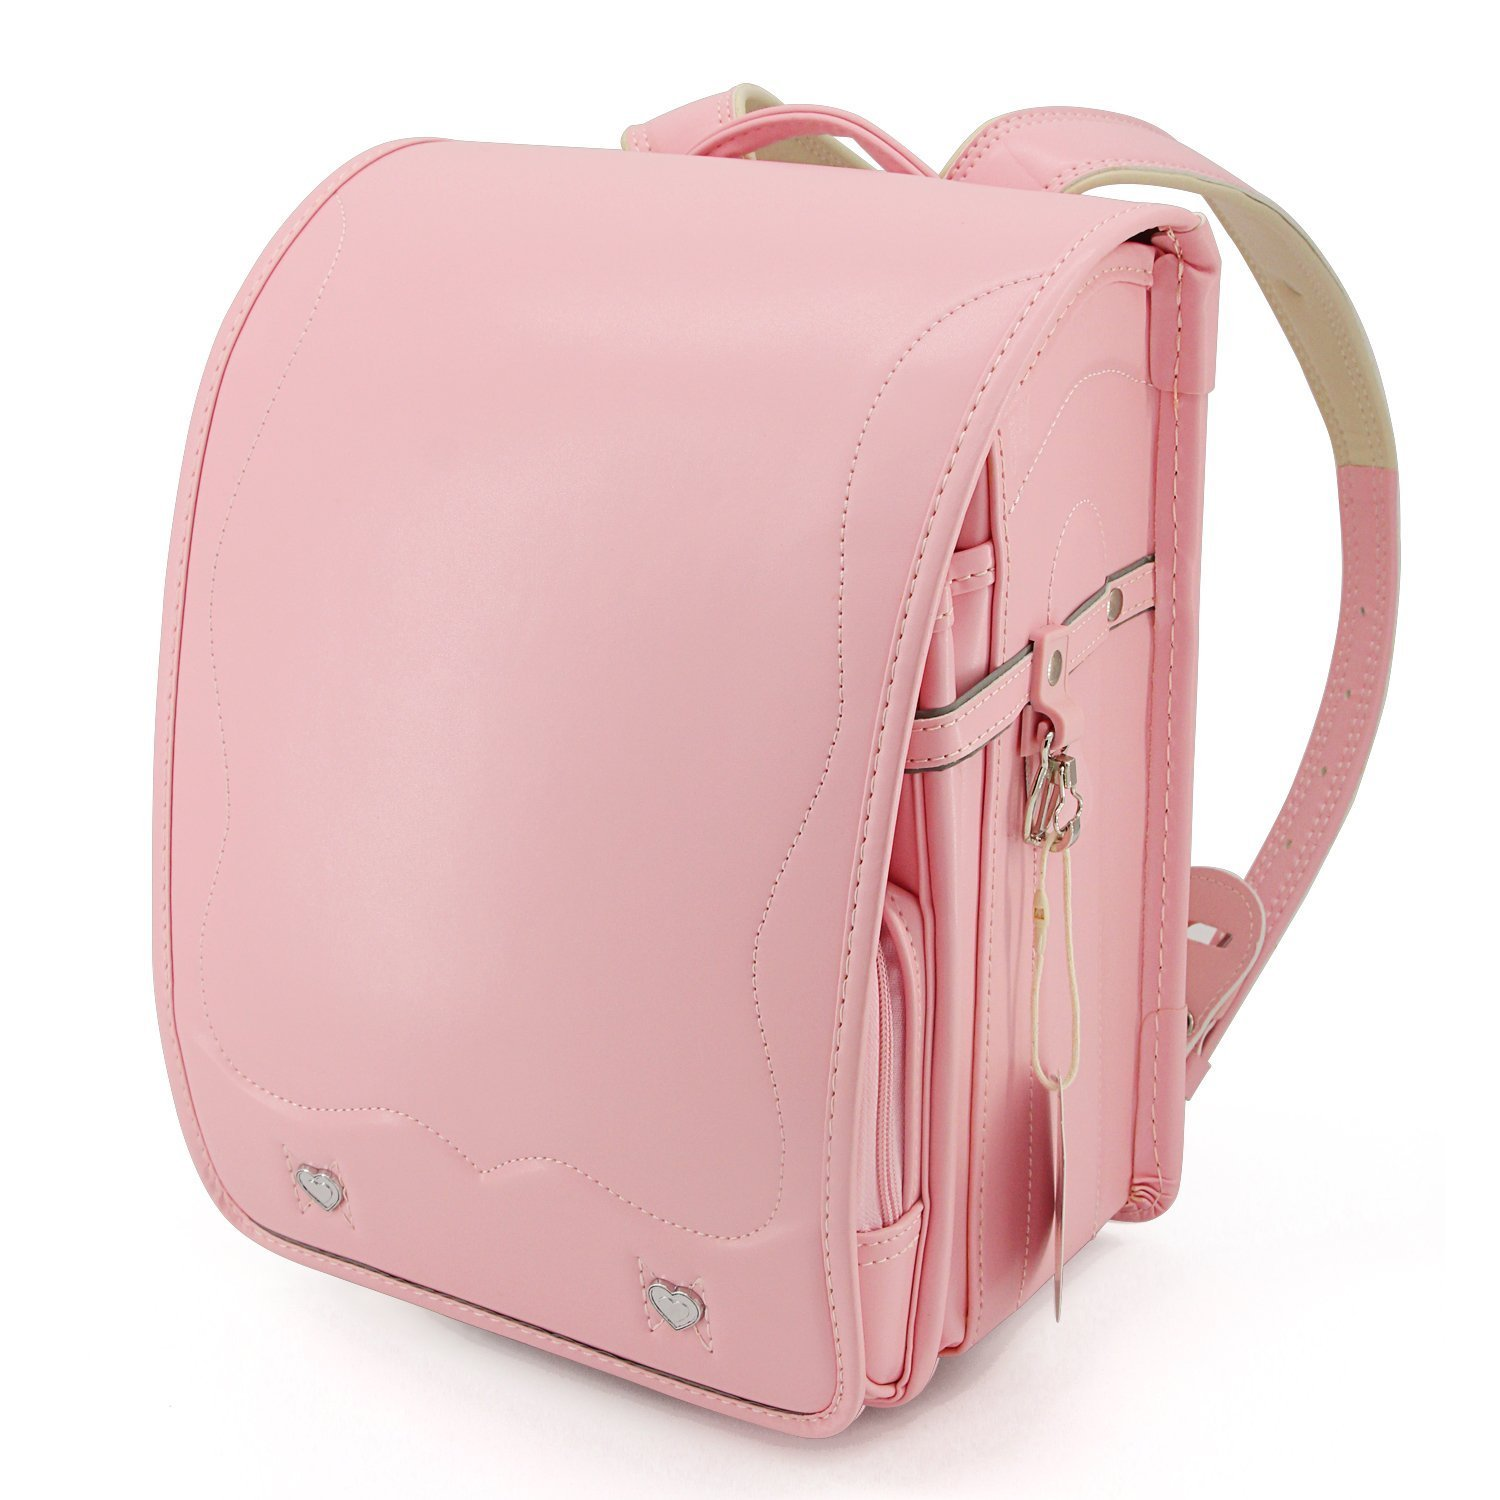 Ransel Randoseru upscale full automatic Japanese schoolbags for girls and boys pink